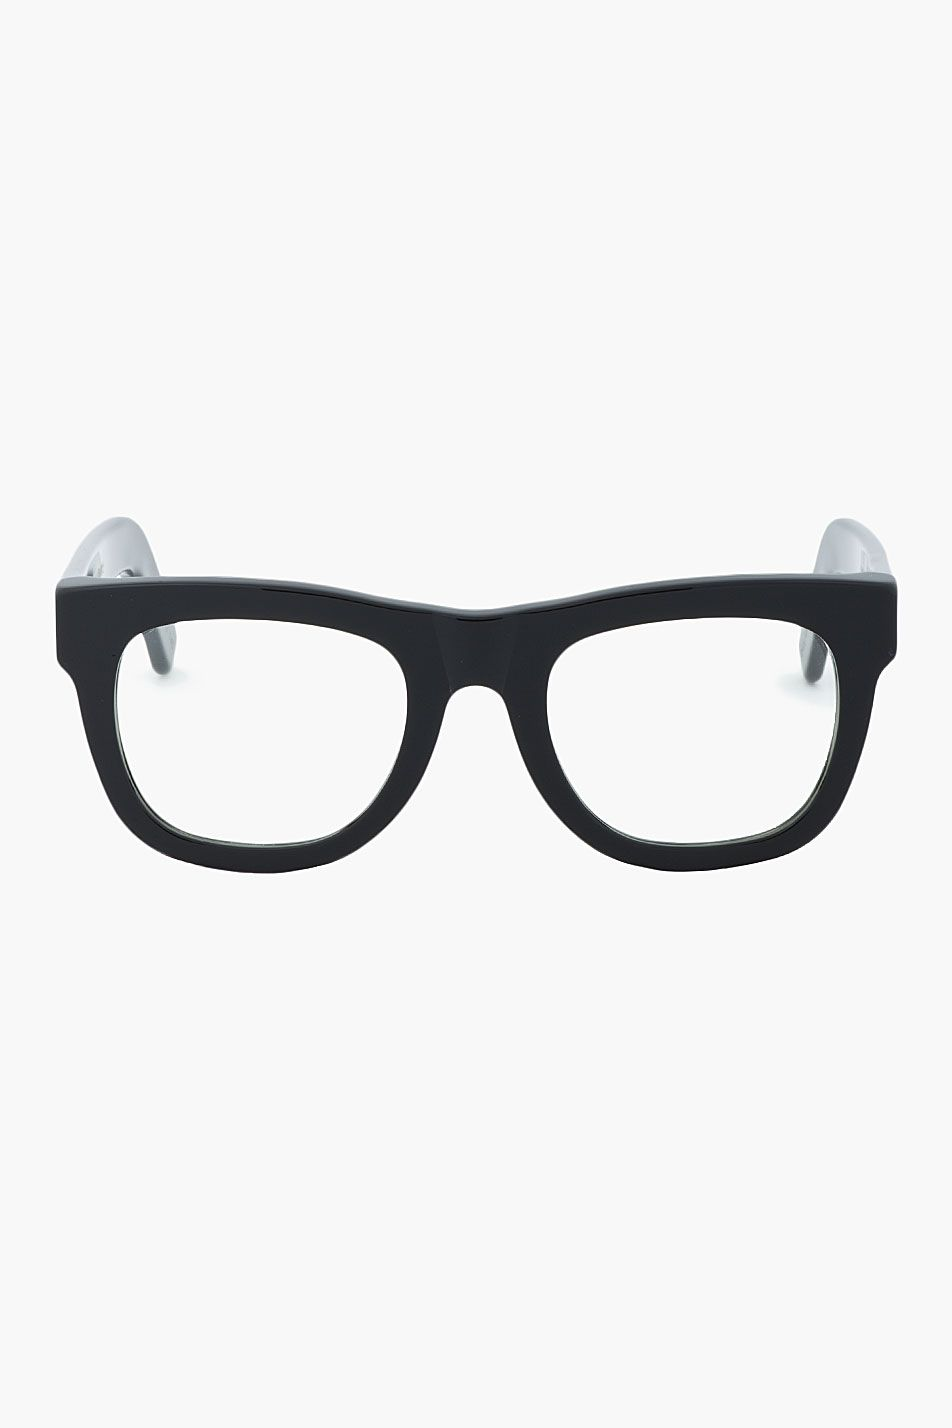 SUPER // Black thick-framed Ciccio glasses 31191M013006 Flat-topped ...